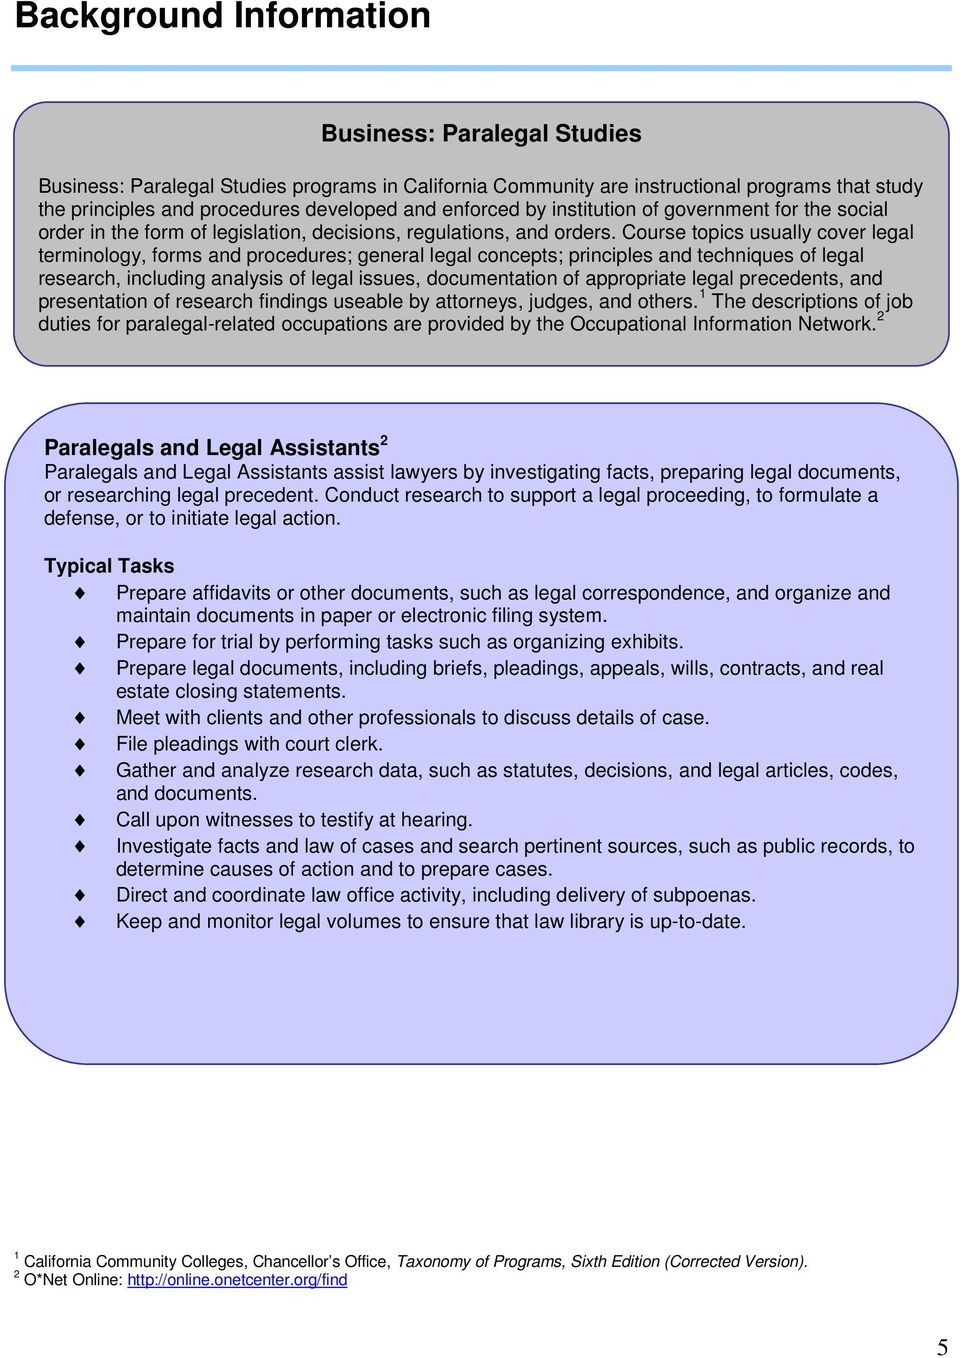 Course topics usually cover legal terminology, forms and procedures; general legal concepts; principles and techniques of legal research, including analysis of legal issues, documentation of